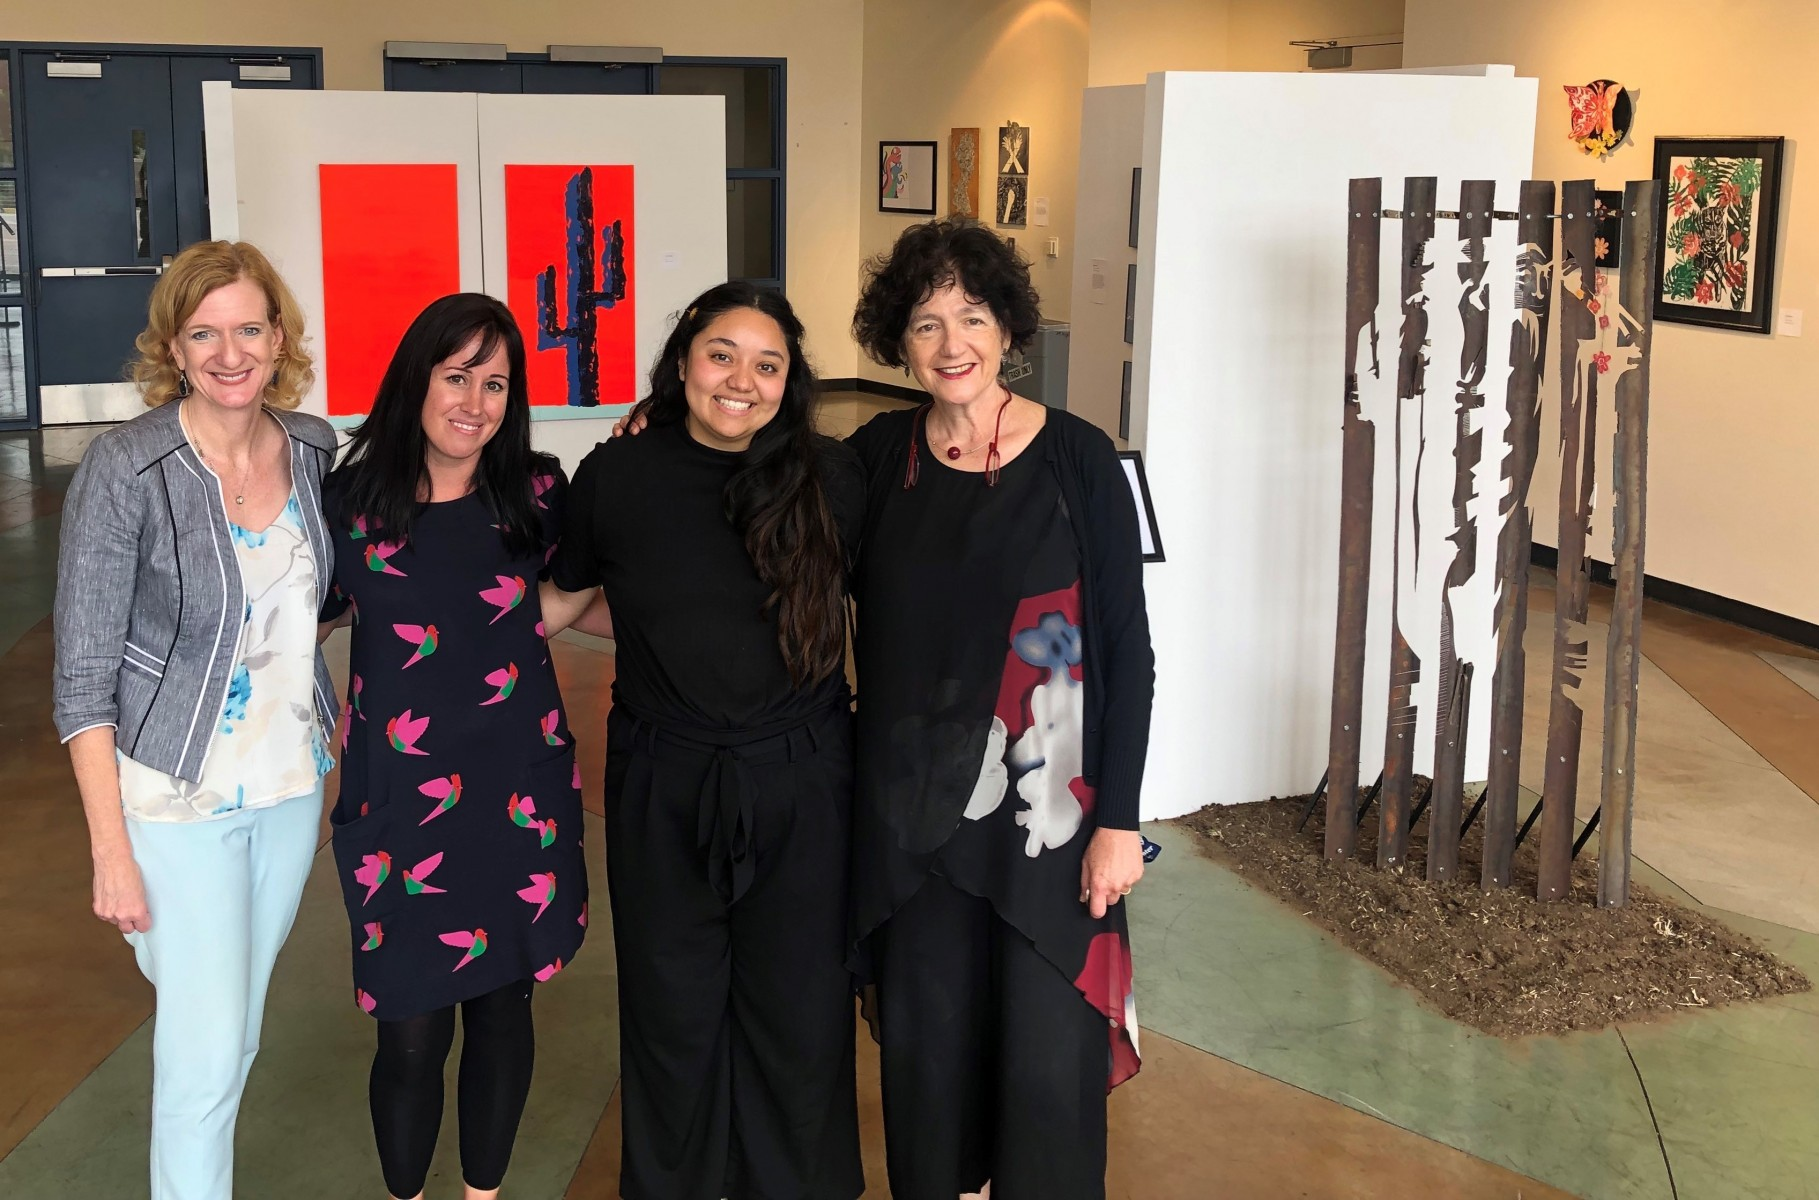 President Ellen Neufeldt (left) checked out the opening of the Juncture exhibit on Sept. 26. She's pictured with co-curators Sarah Bricke and Kimberly Lopez, and Judit Hersko (right), chair of the Art, Media and Design department.